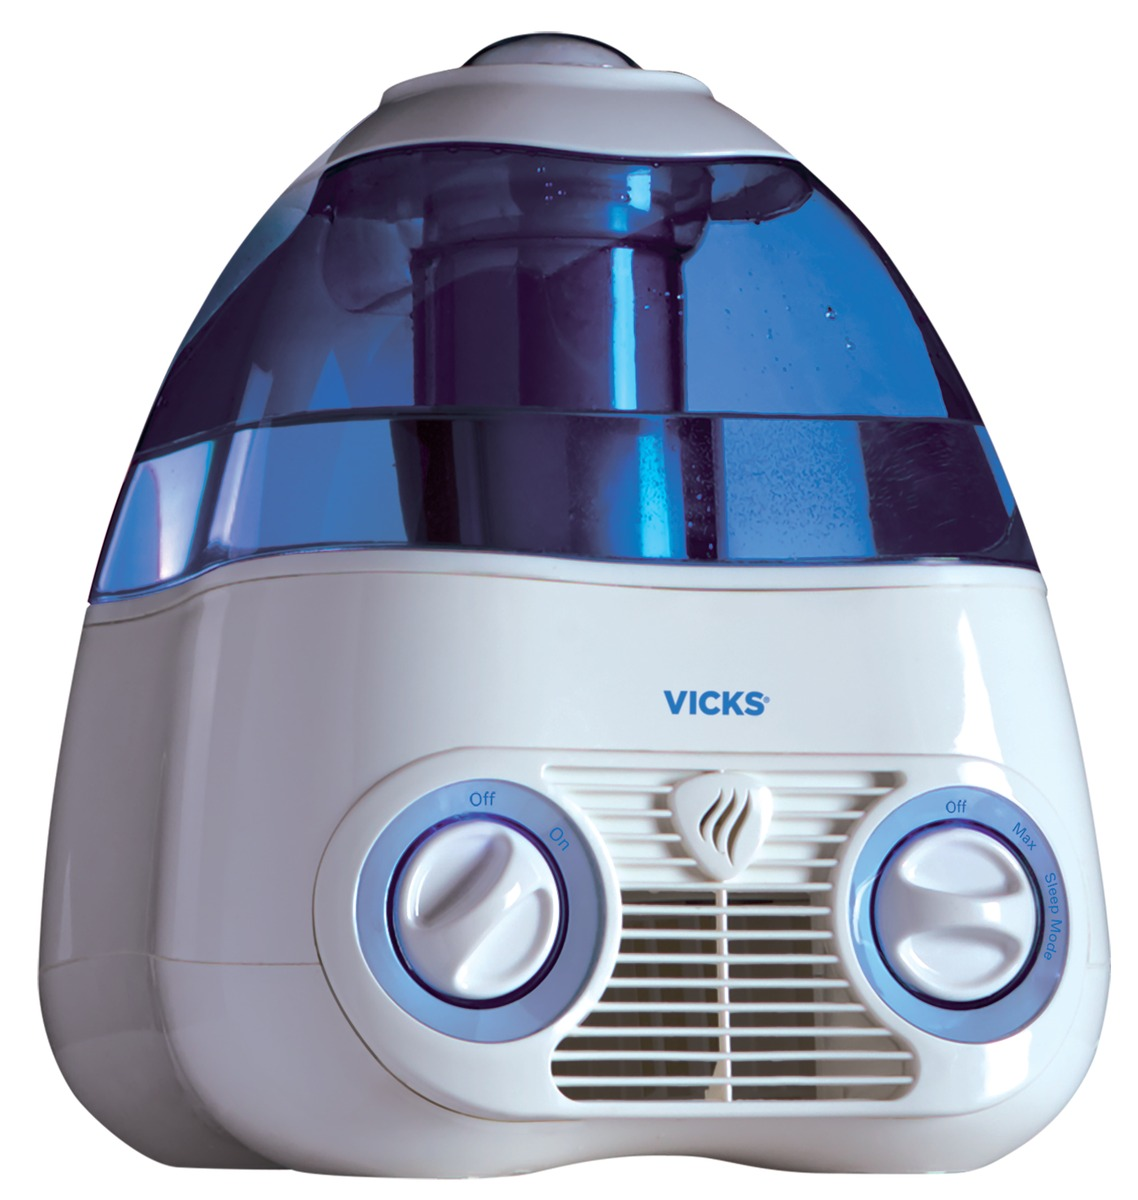 Vicks Starry Night Cool Moisture Humidifier, V3700